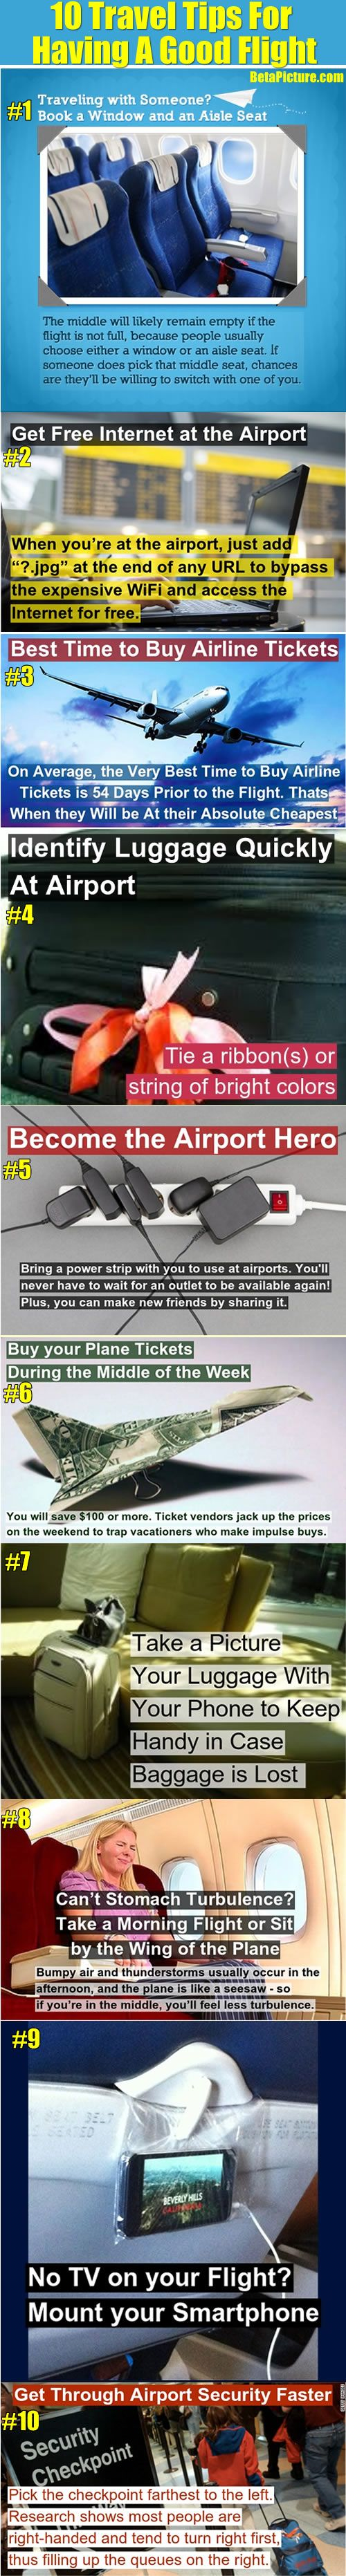 10 Travel Tips That You Must Know To Have A Good Flight.